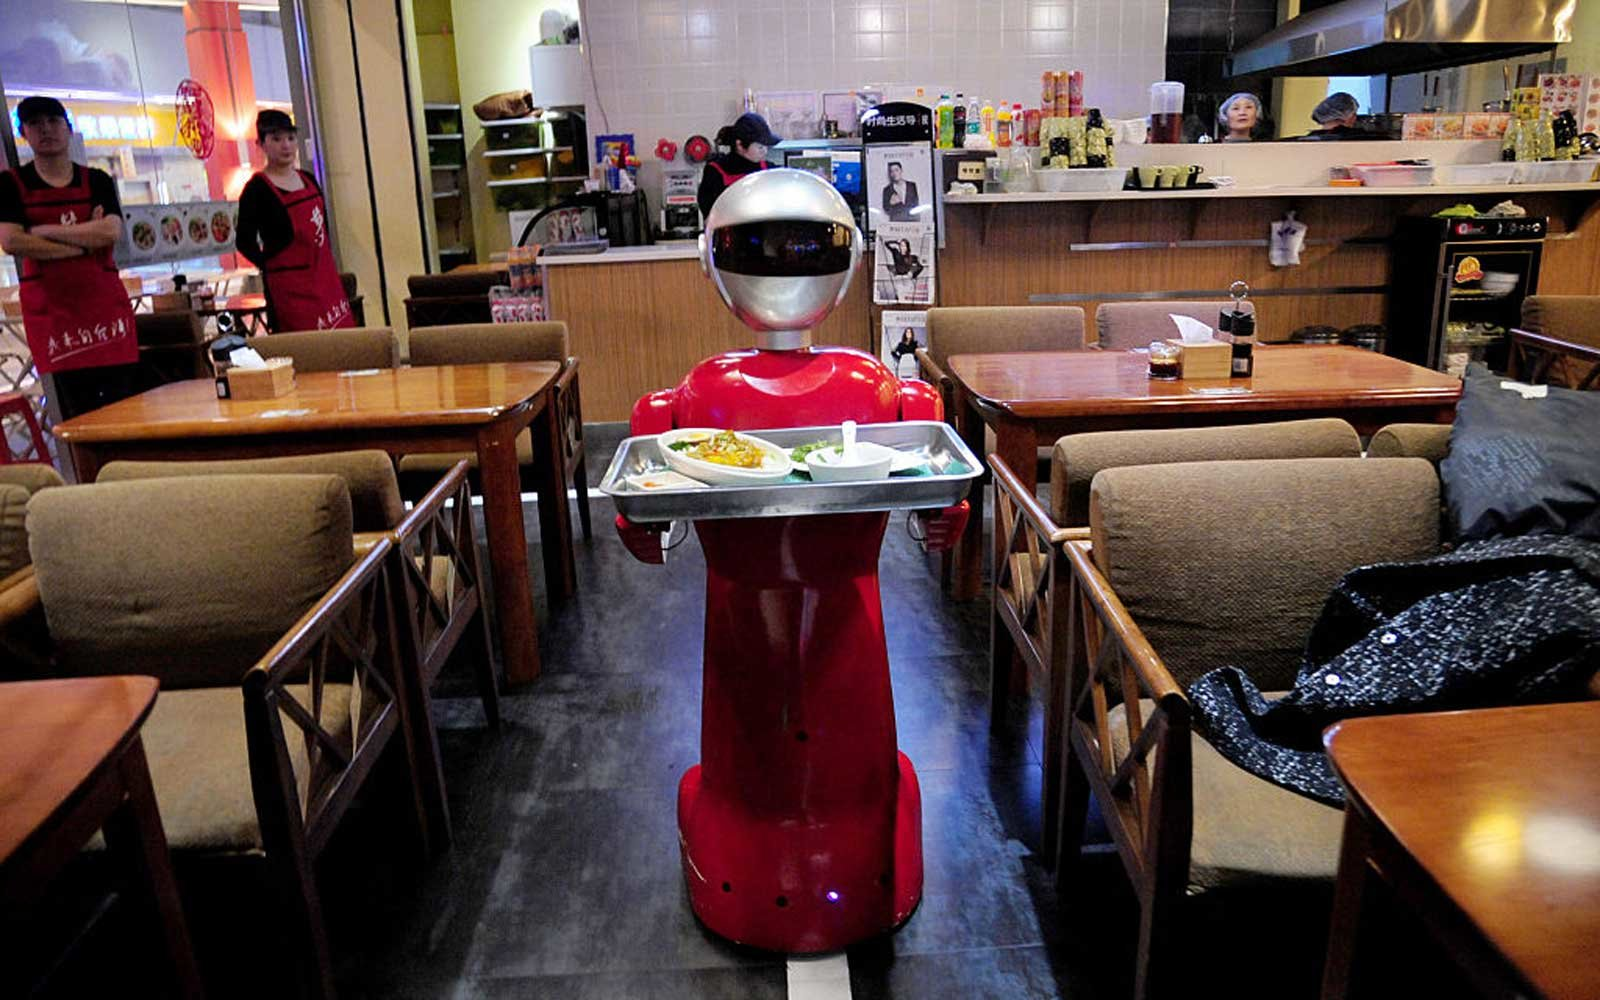 SHENYANG, CHINA - MARCH 15:  (CHINA OUT) A robot delivers meals for customers at a restaurant on March 15, 2016 in Shenyang, Liaoning Province of China. The robot which's in 140 centimeters high and 60 kilograms weight can communicate daily words with cus